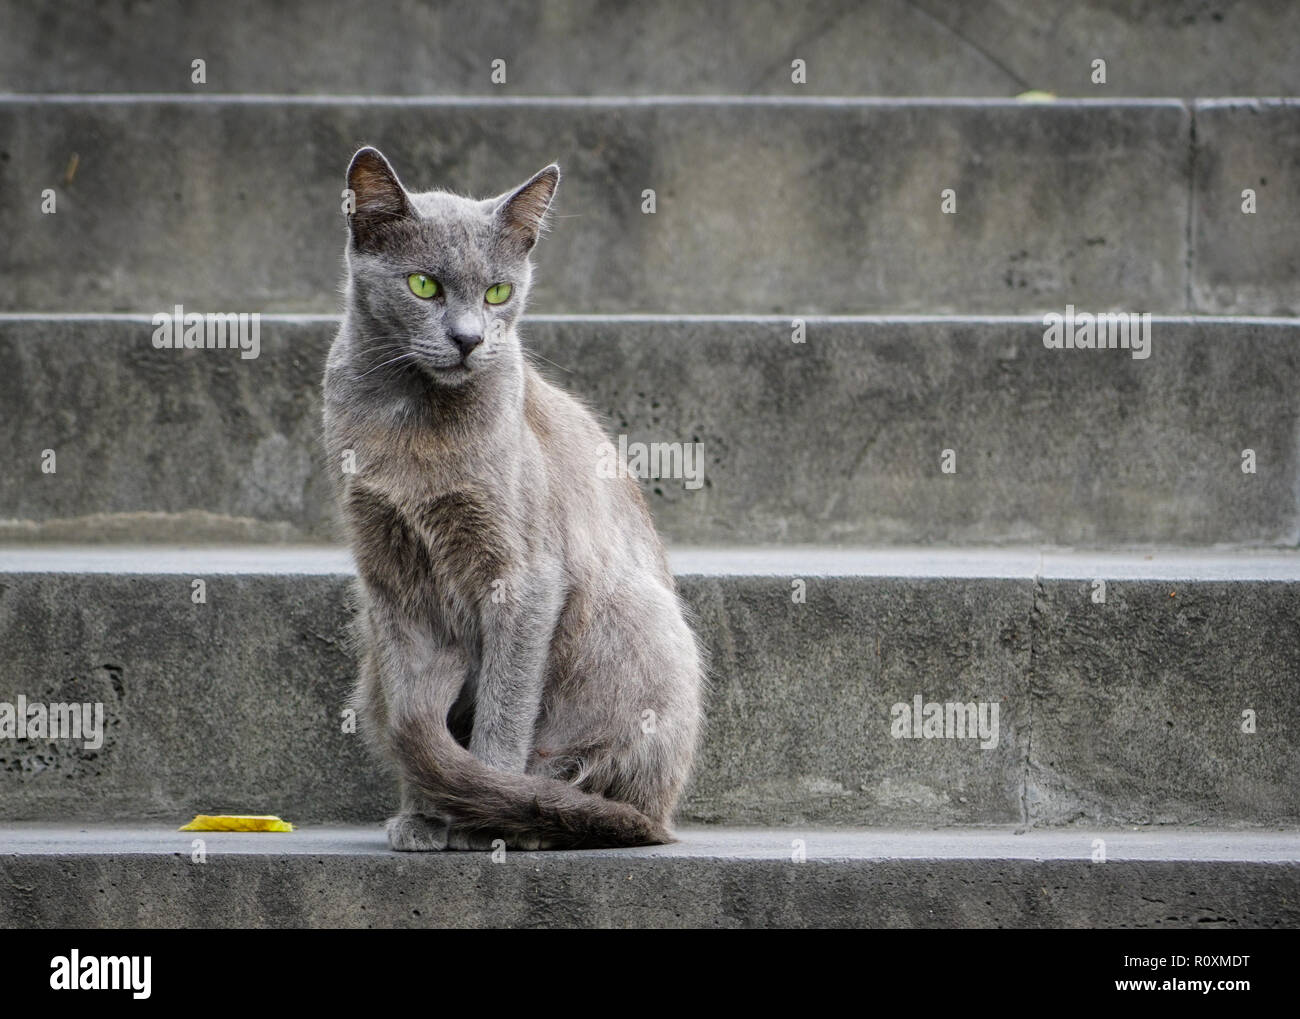 Beautiful gray cat with green eyes sitting on a gray stone staircase - Stock Image